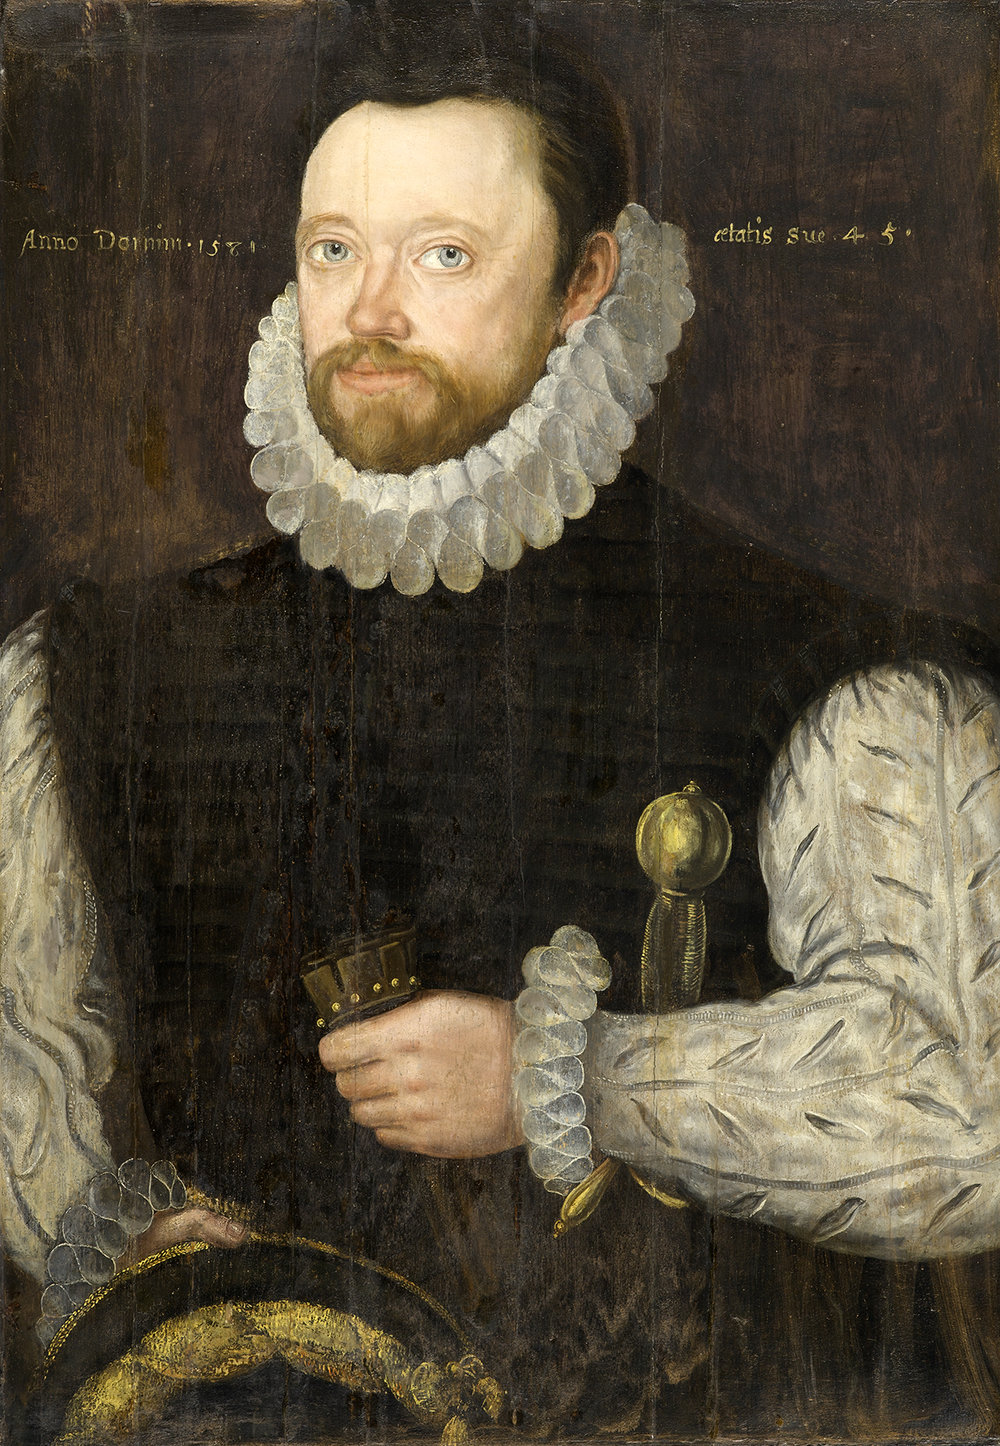 British School, Portrait of a Gentleman, possibly Reginald Scott (circa 1537–99), 1581, oil on cedar panel, 27 x 18 in., Gift of Mr. and Mrs. James MacLamroc